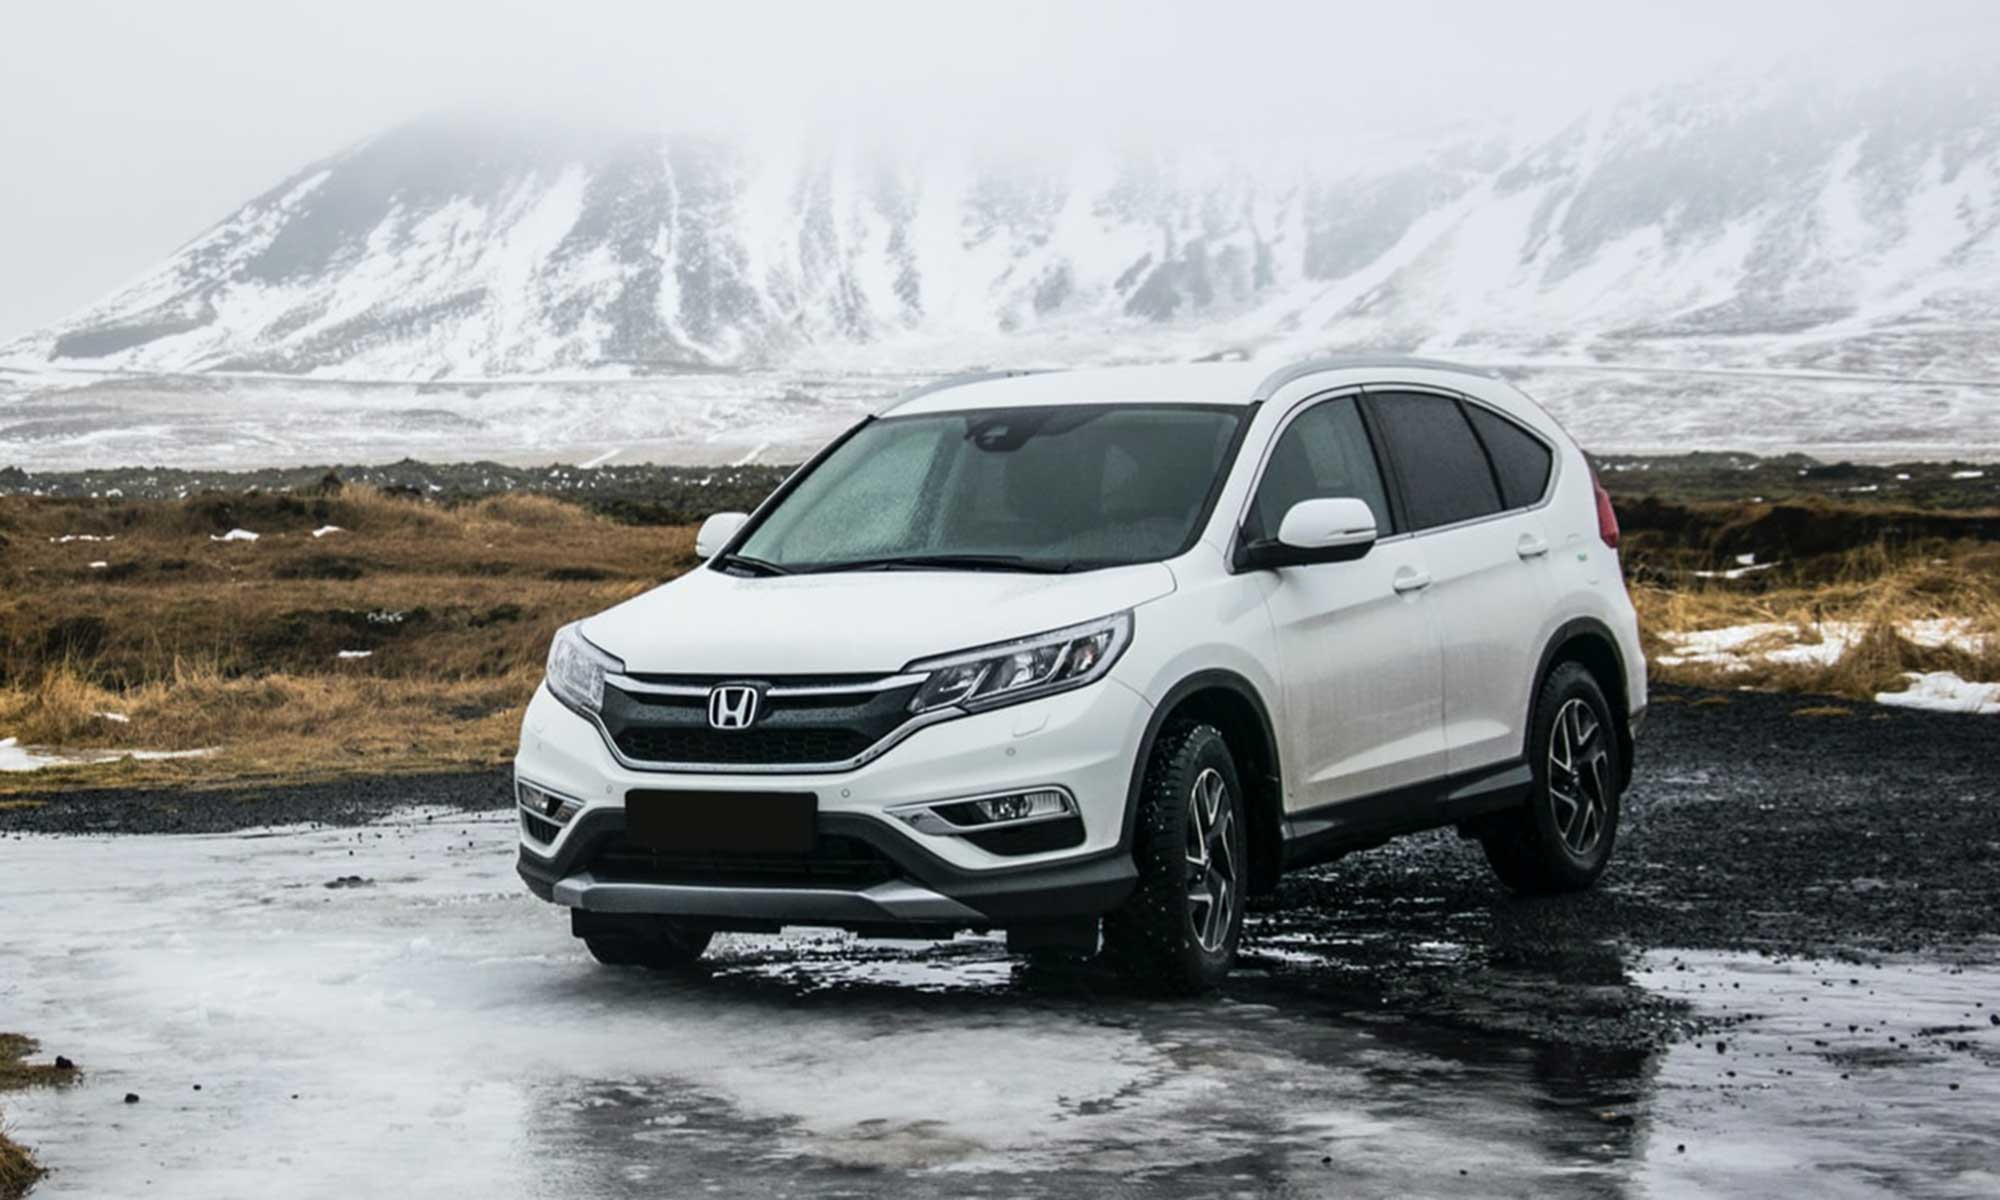 white Honda CRV guide